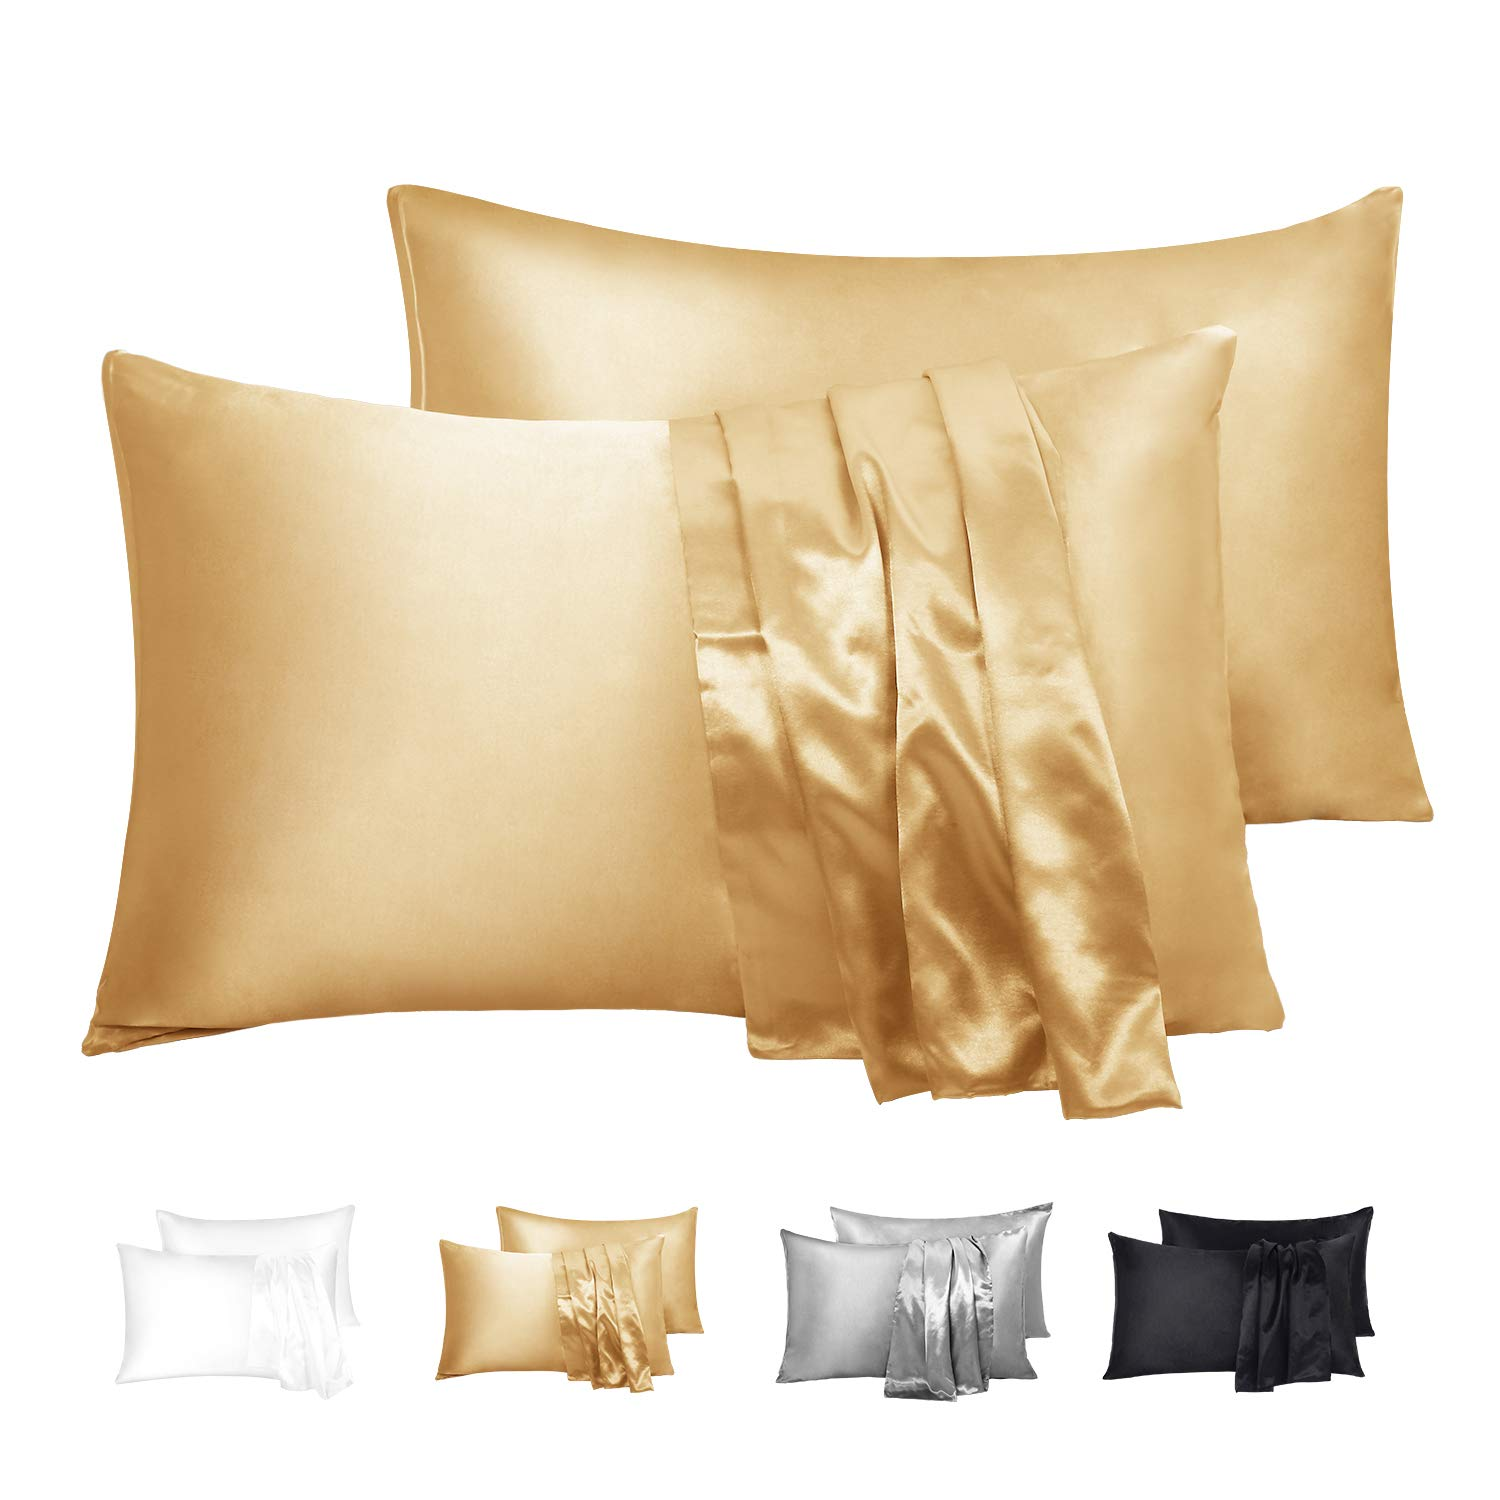 "Duerer Satin Pillowcase 2 Pack for Hair and Skin, Soft Pillow Cases Covers with Envelope Closure, Standard/Queen/King Size(20""x26"",Gold)"